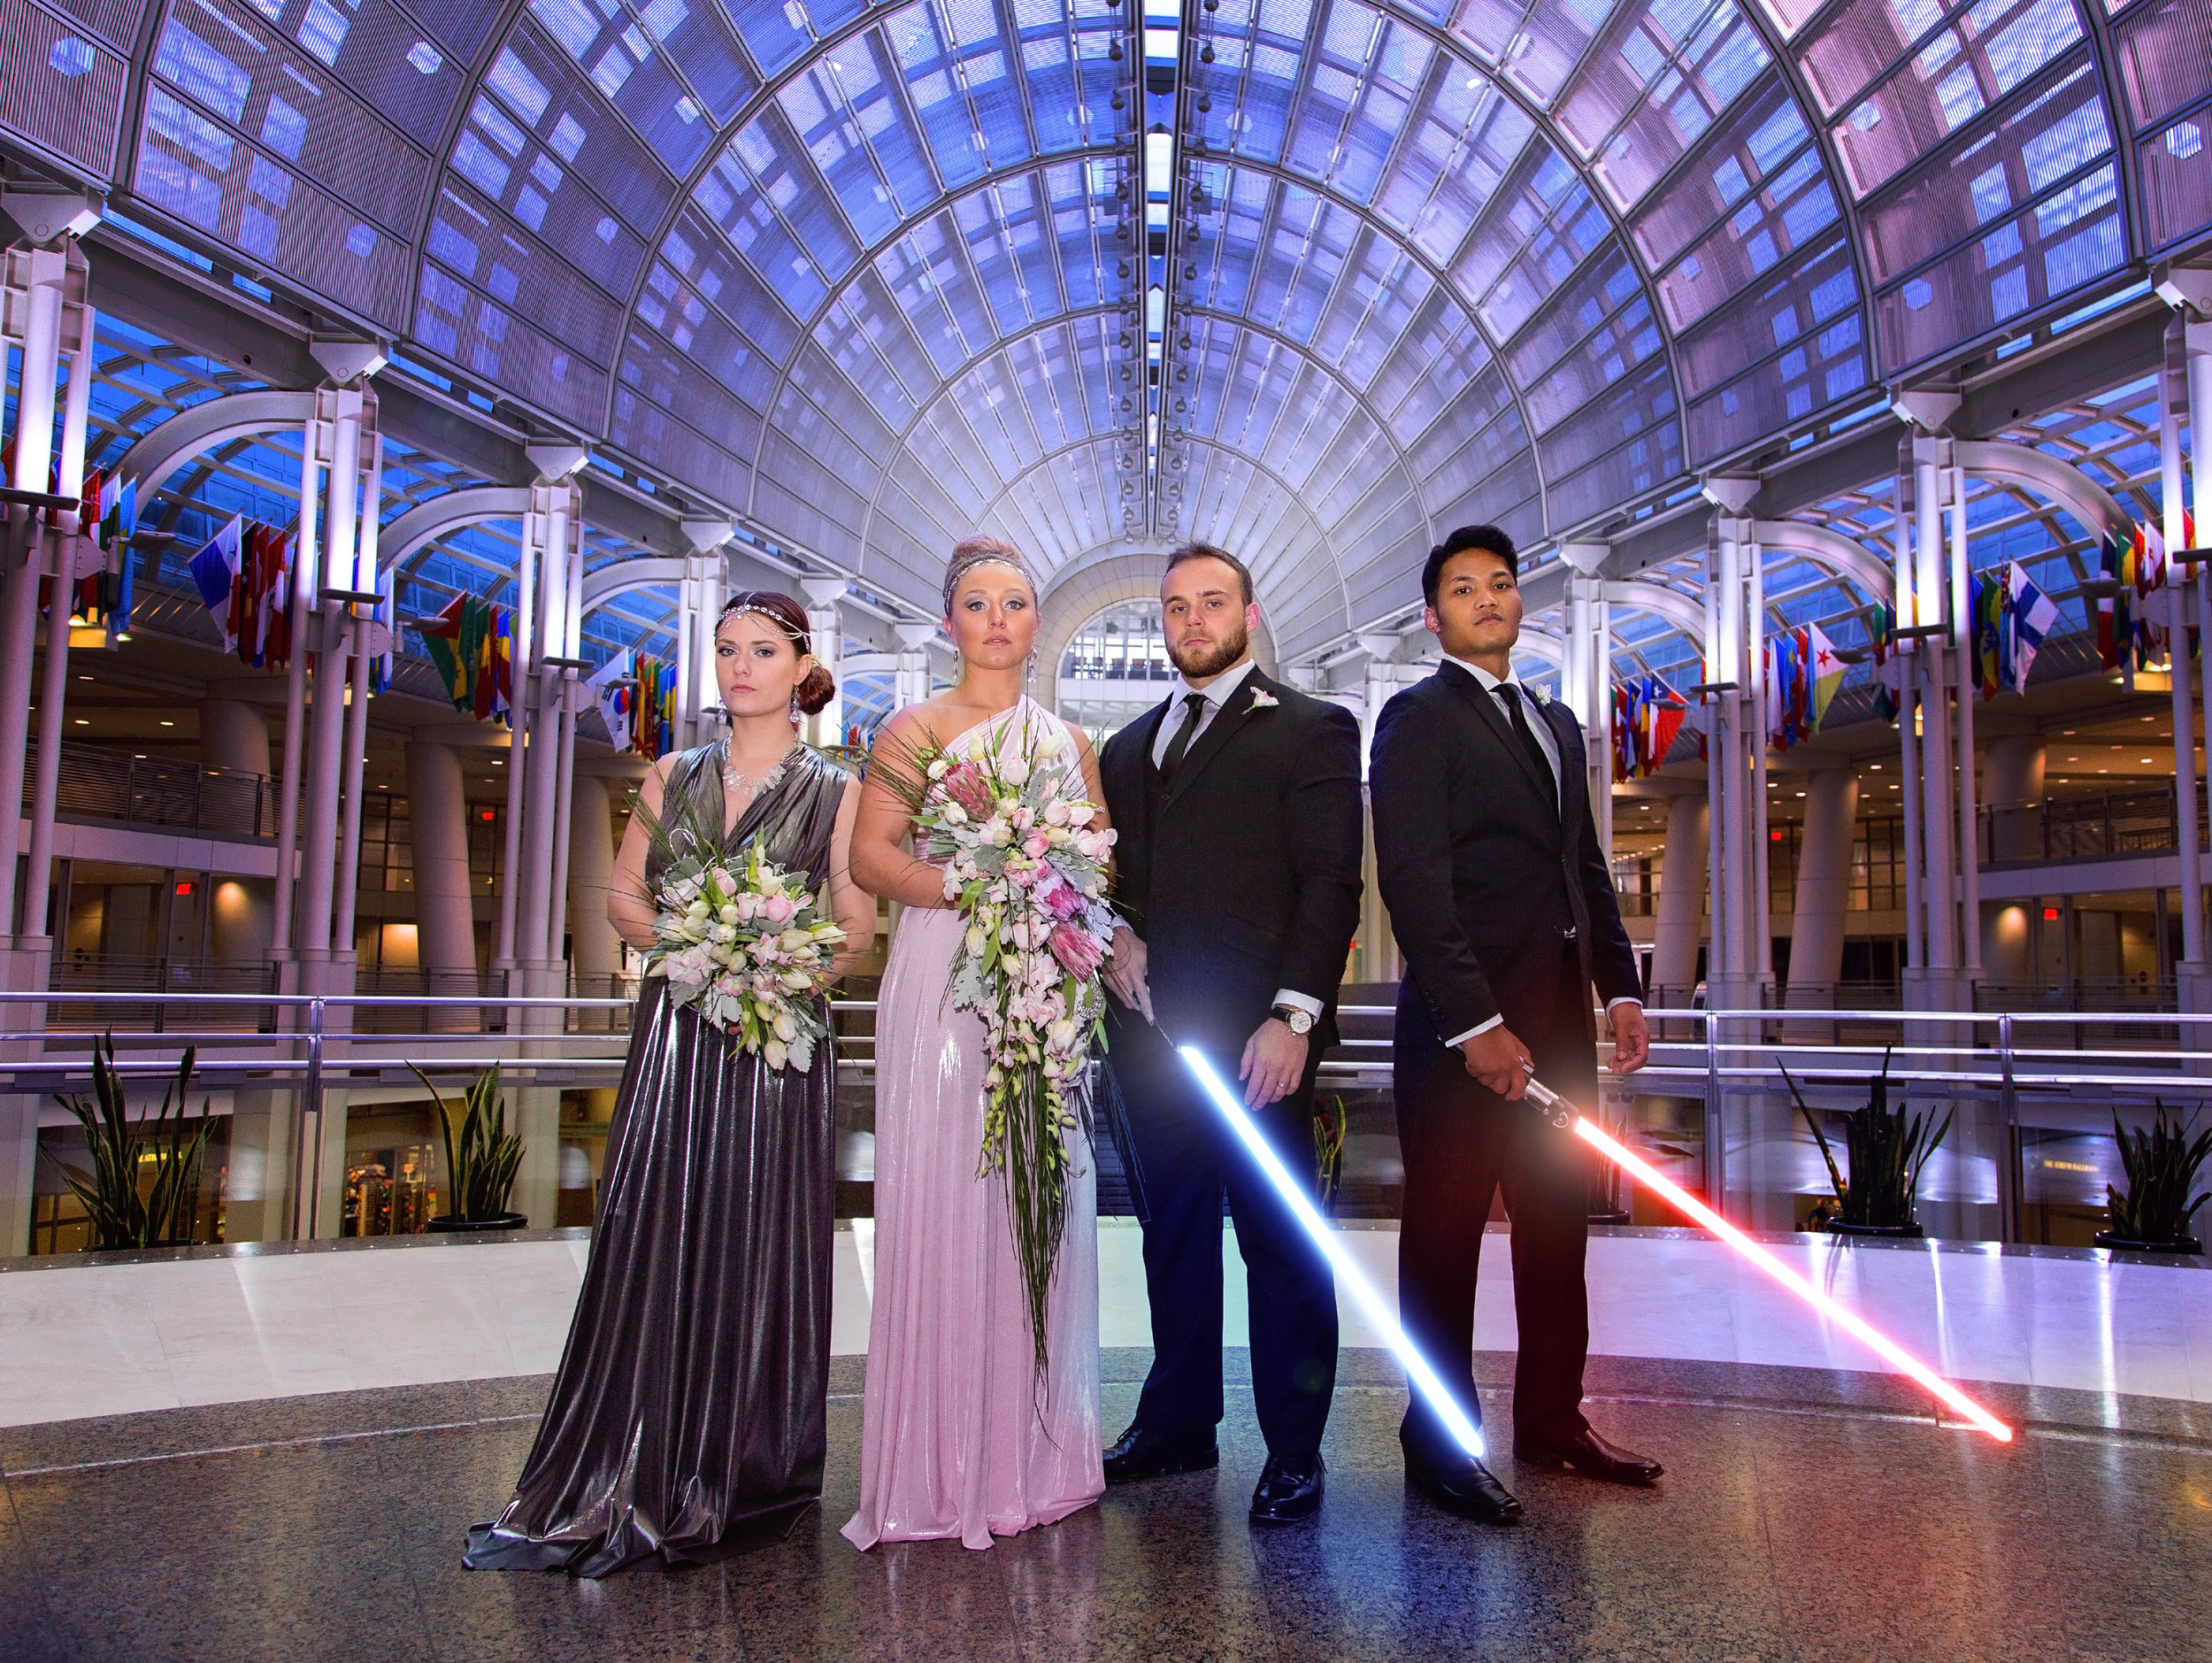 Jedi wedding lower tone.jpg